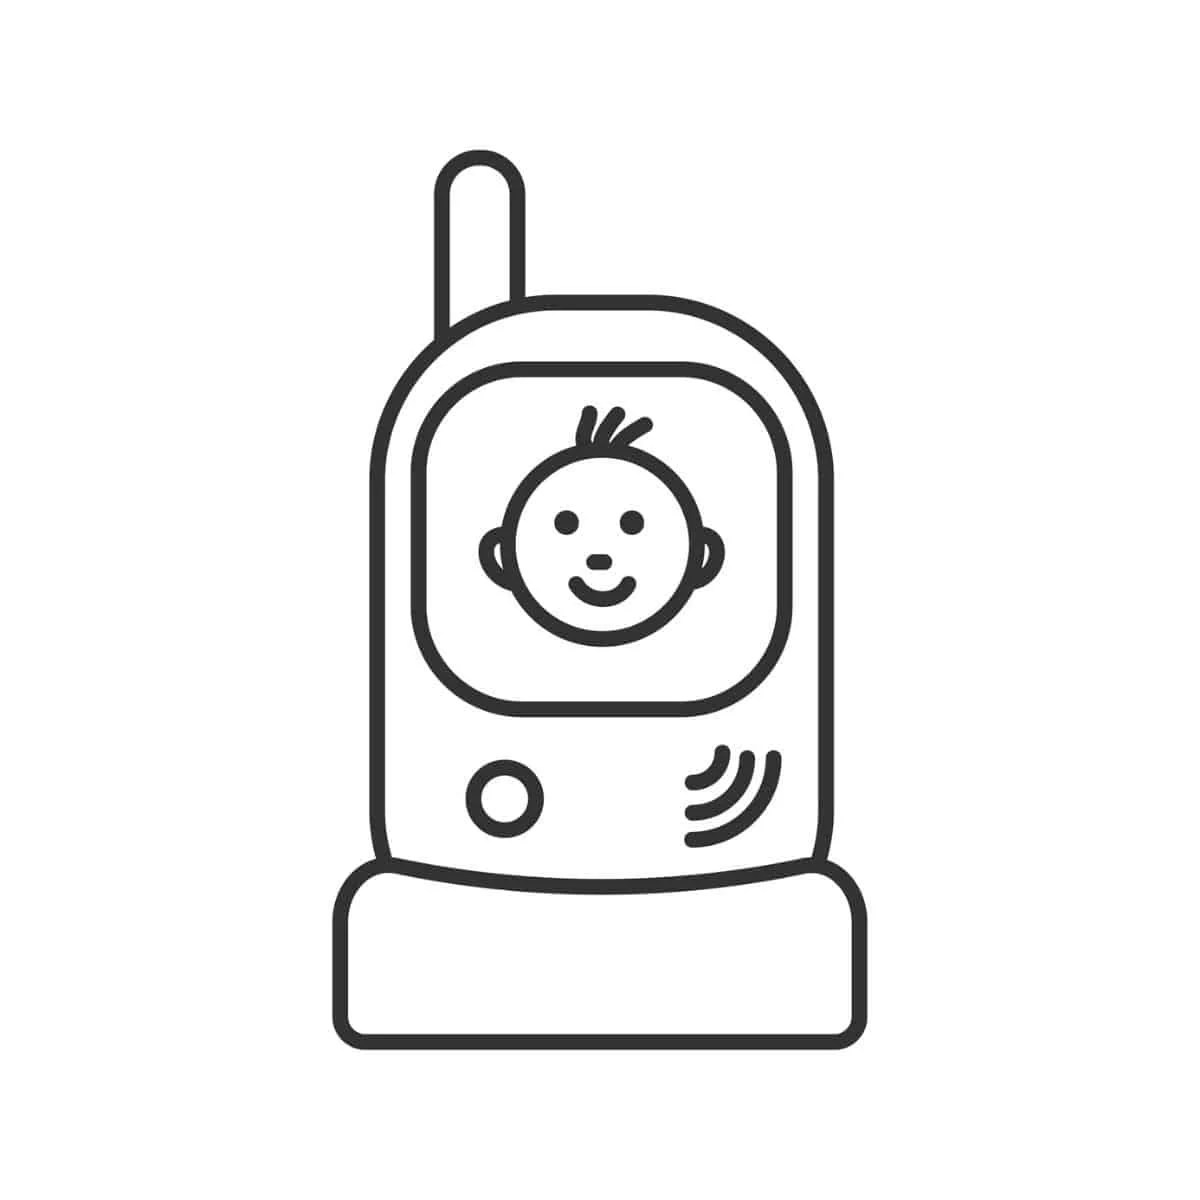 8 Tips for Choosing the Best Travel Baby Monitor for Your